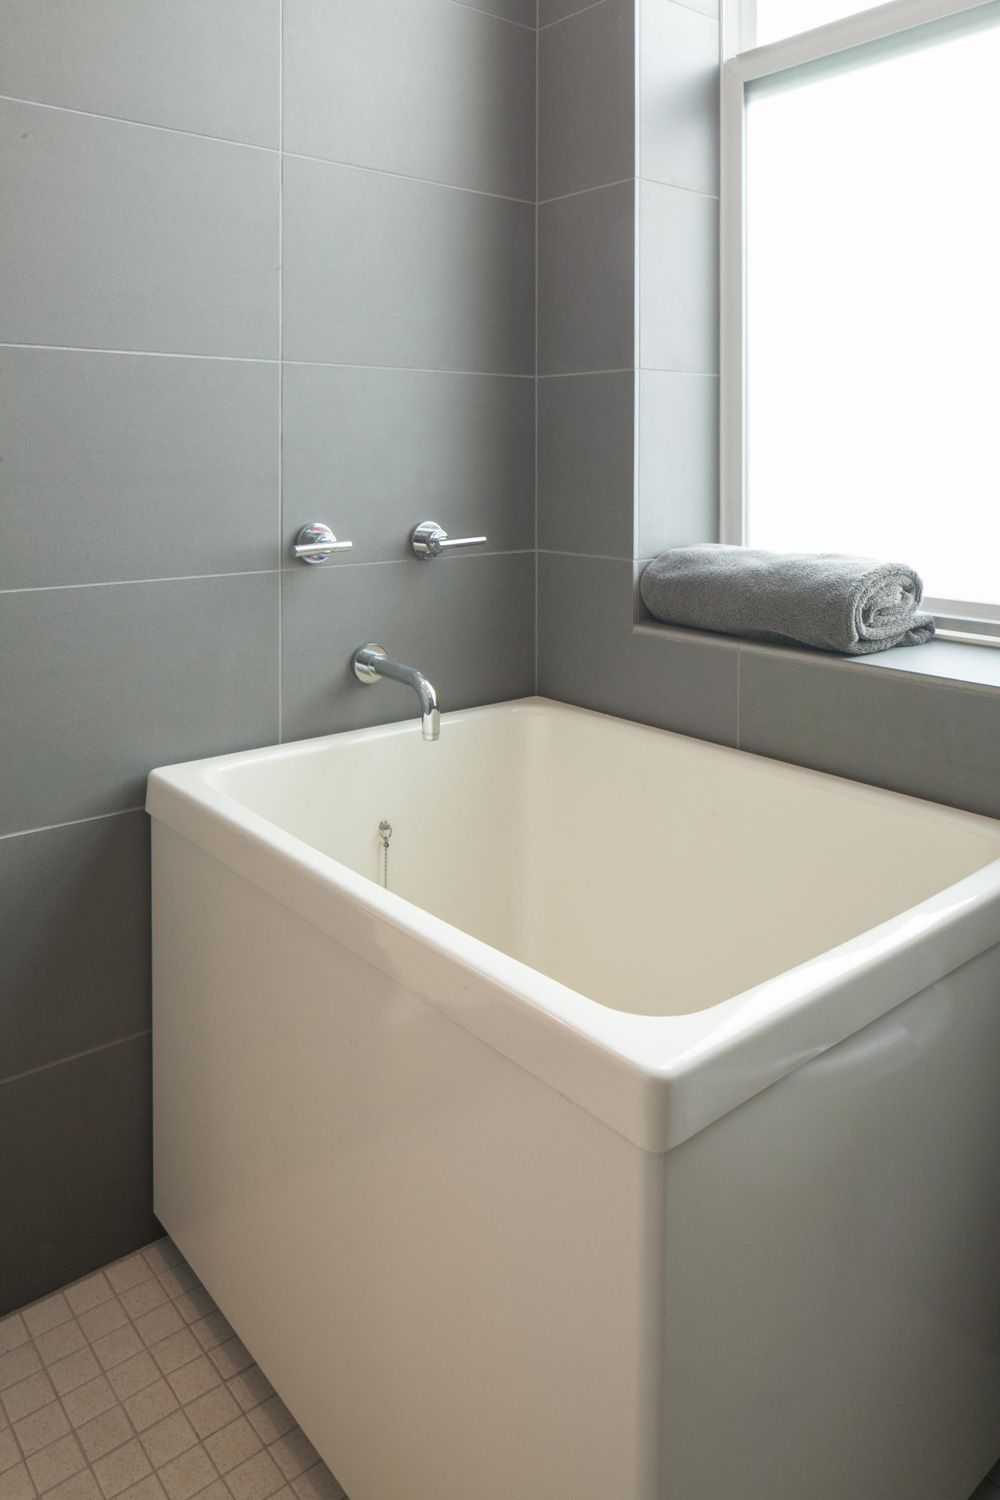 japanese soaking tub  ofuro tub square with a builtin seat  - japanese soaking tub  ofuro tub square with a builtin seat takes